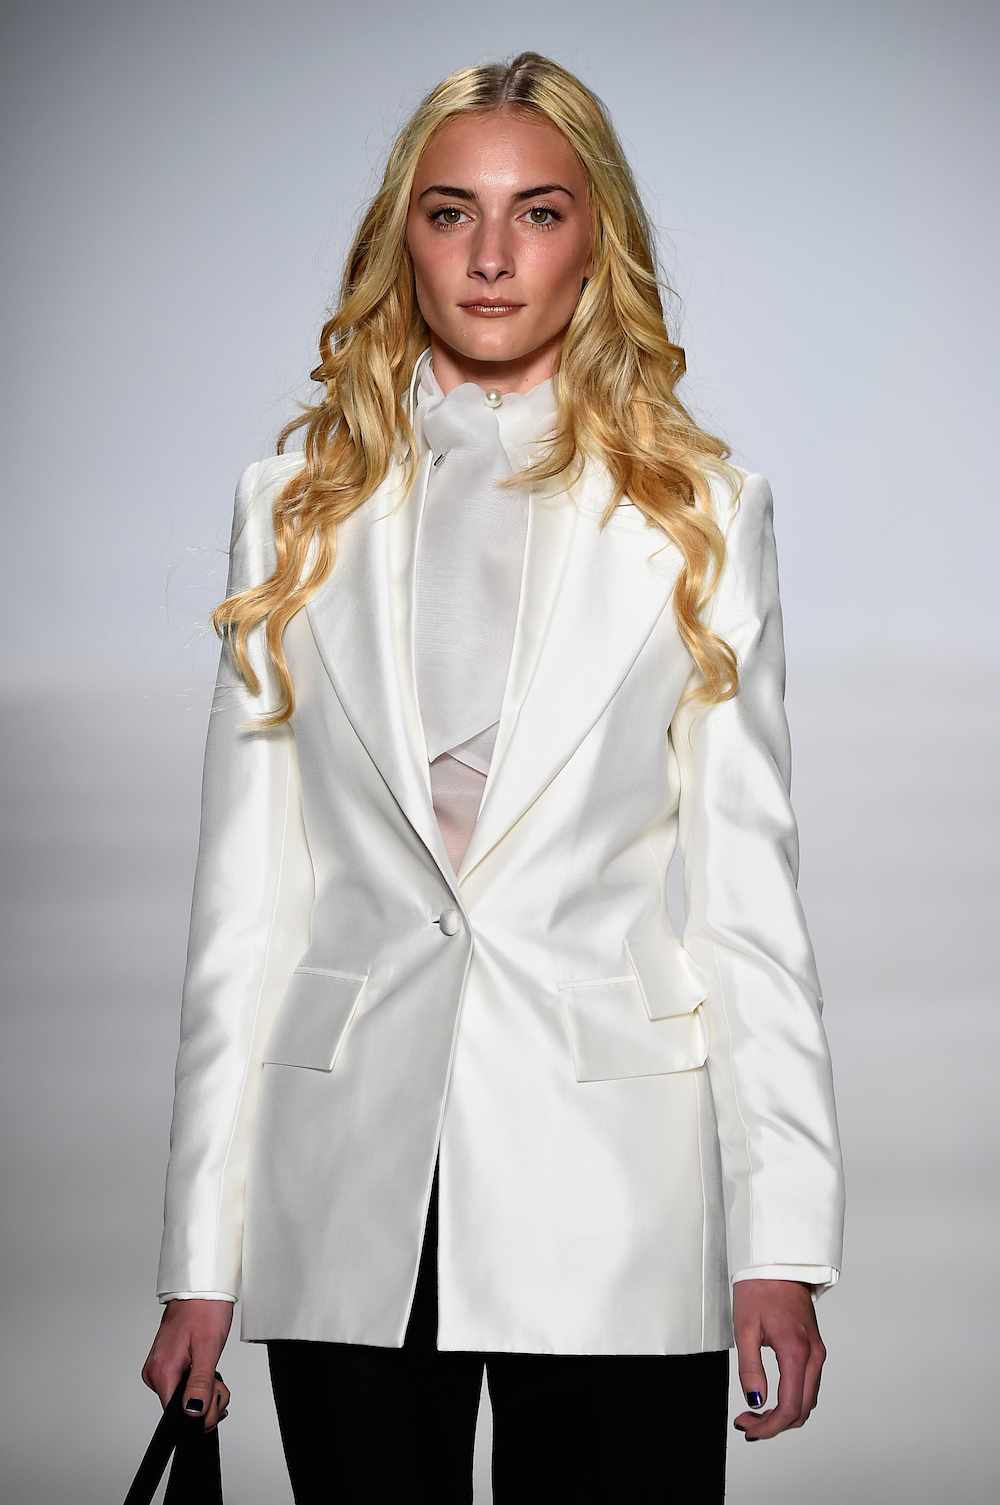 Zang Toi - Runway - Mercedes-Benz Fashion Week Spring 2015